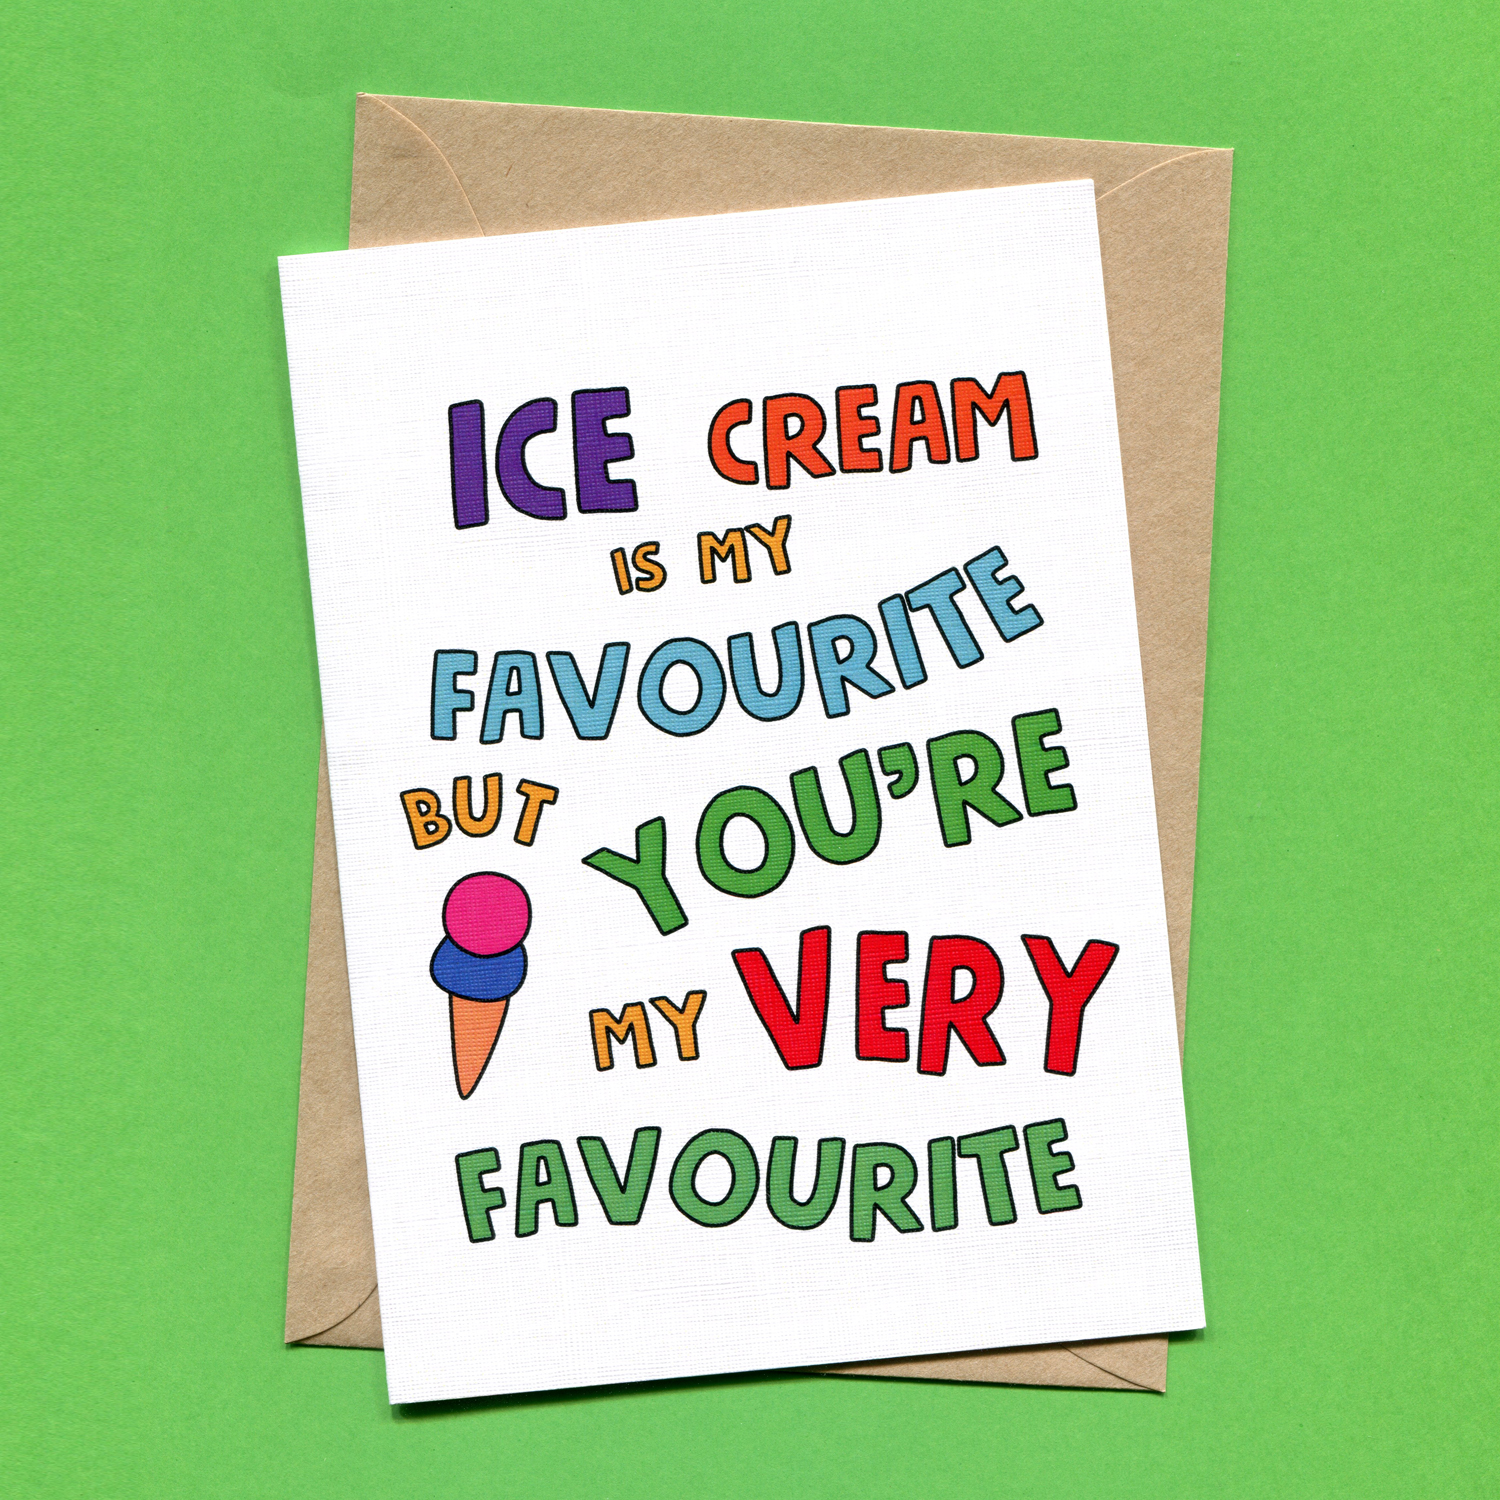 Catalogue_Things by Bean Ice Cream Is My Favourite But Youre My Very Favourite Greeting Card.jpg